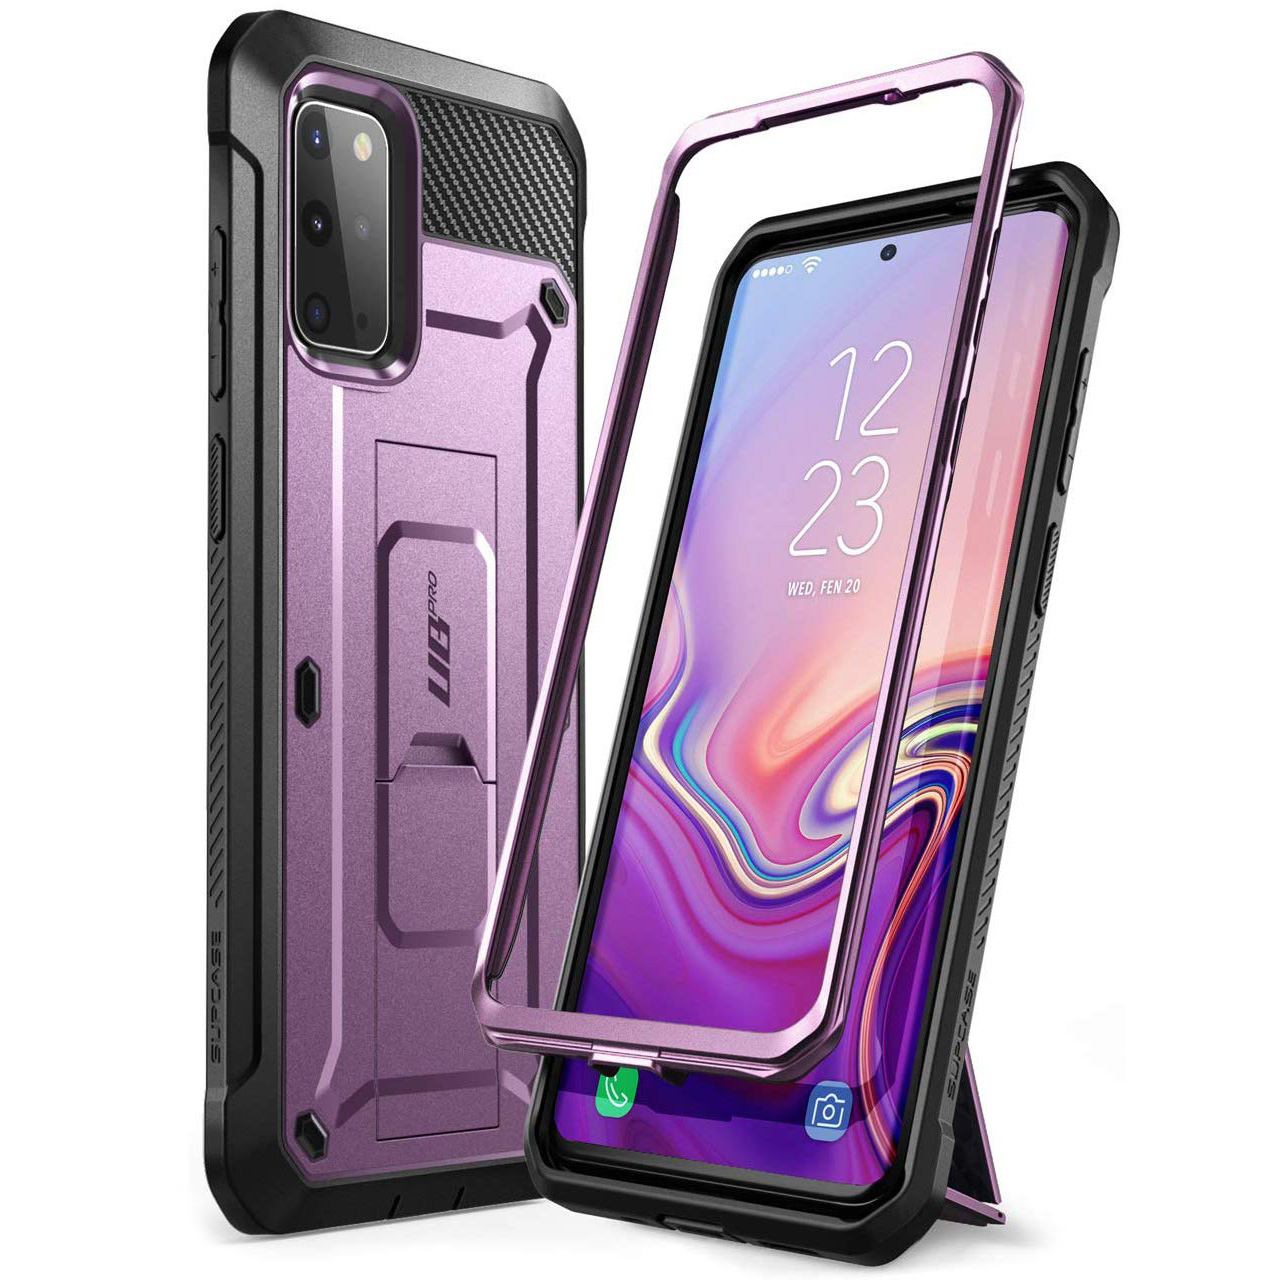 Etui pancerne Supcase Unicorn Beetle Pro do Galaxy S20 Plus